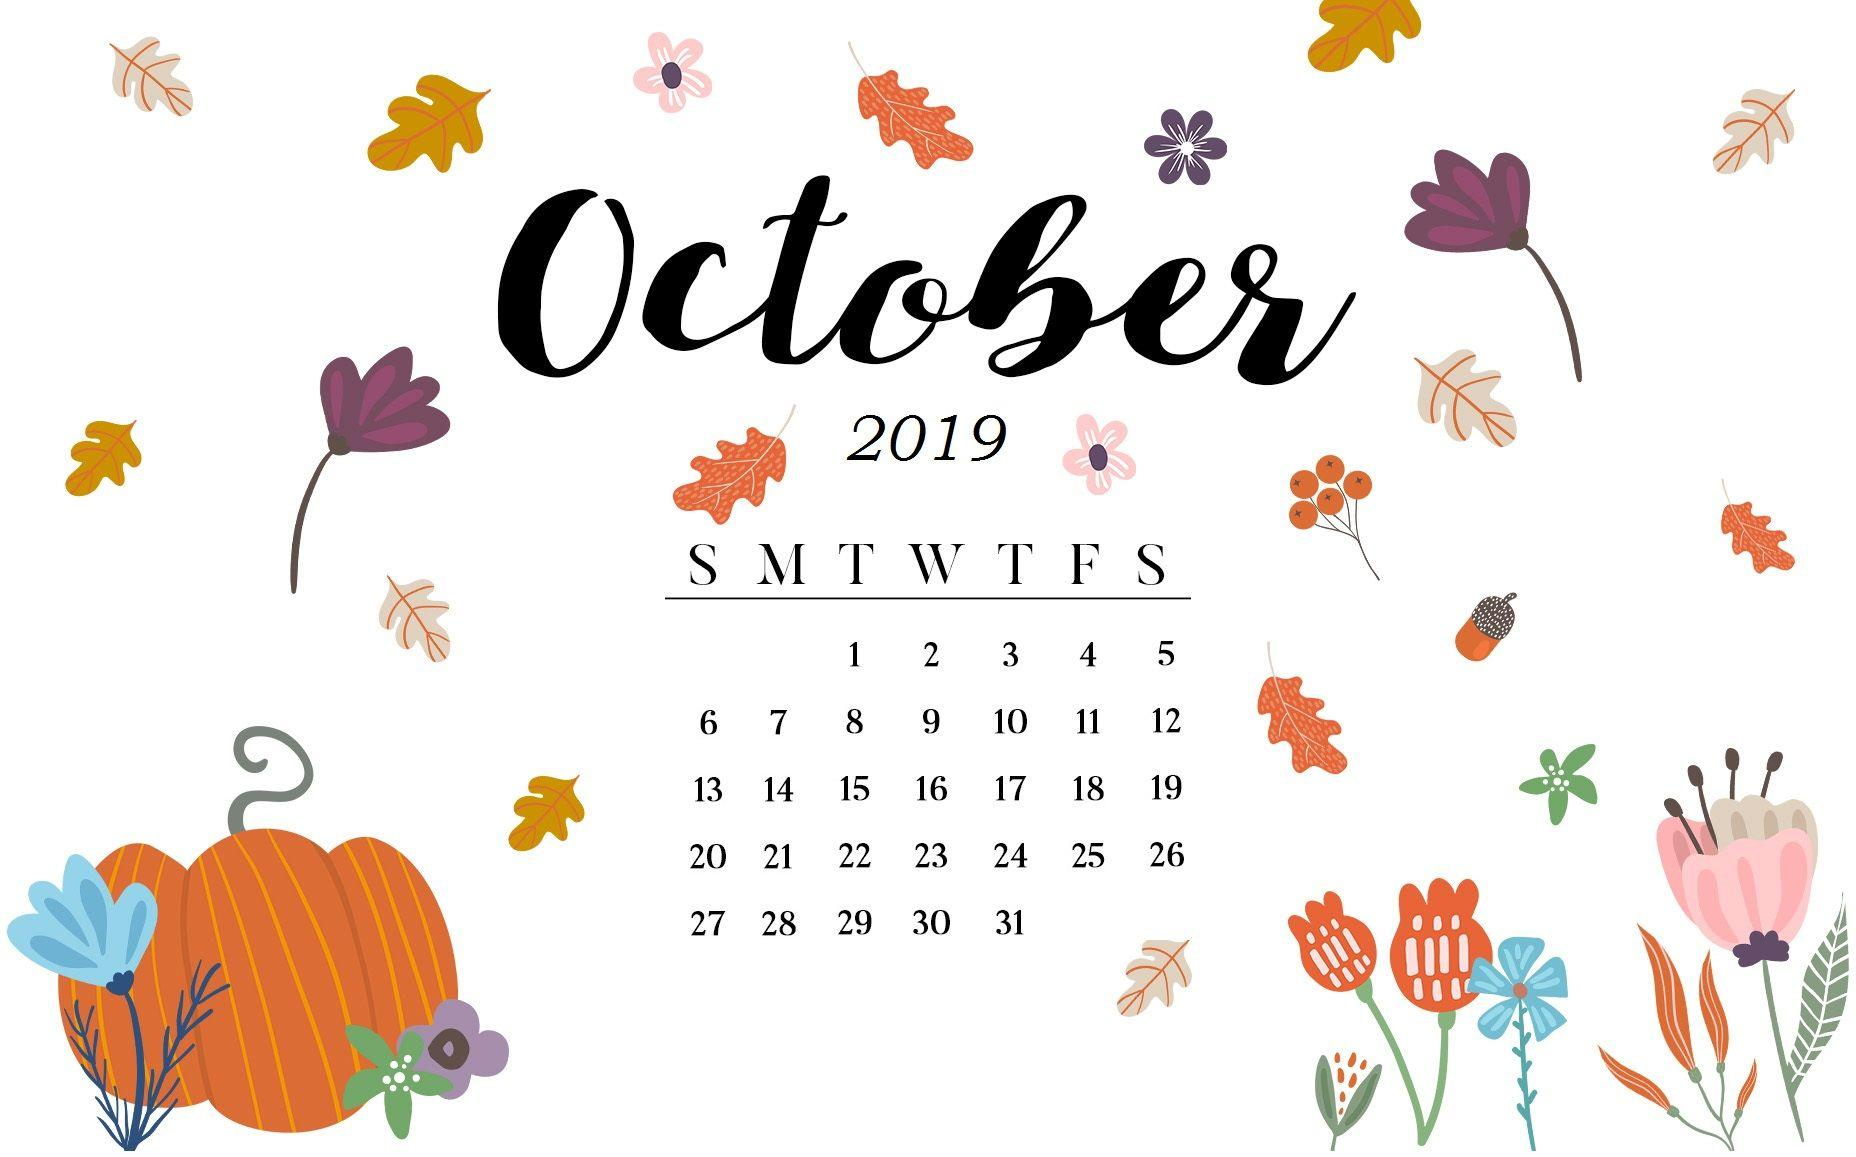 October 2019 Calendar Wallpapers , Wallpaper Cave